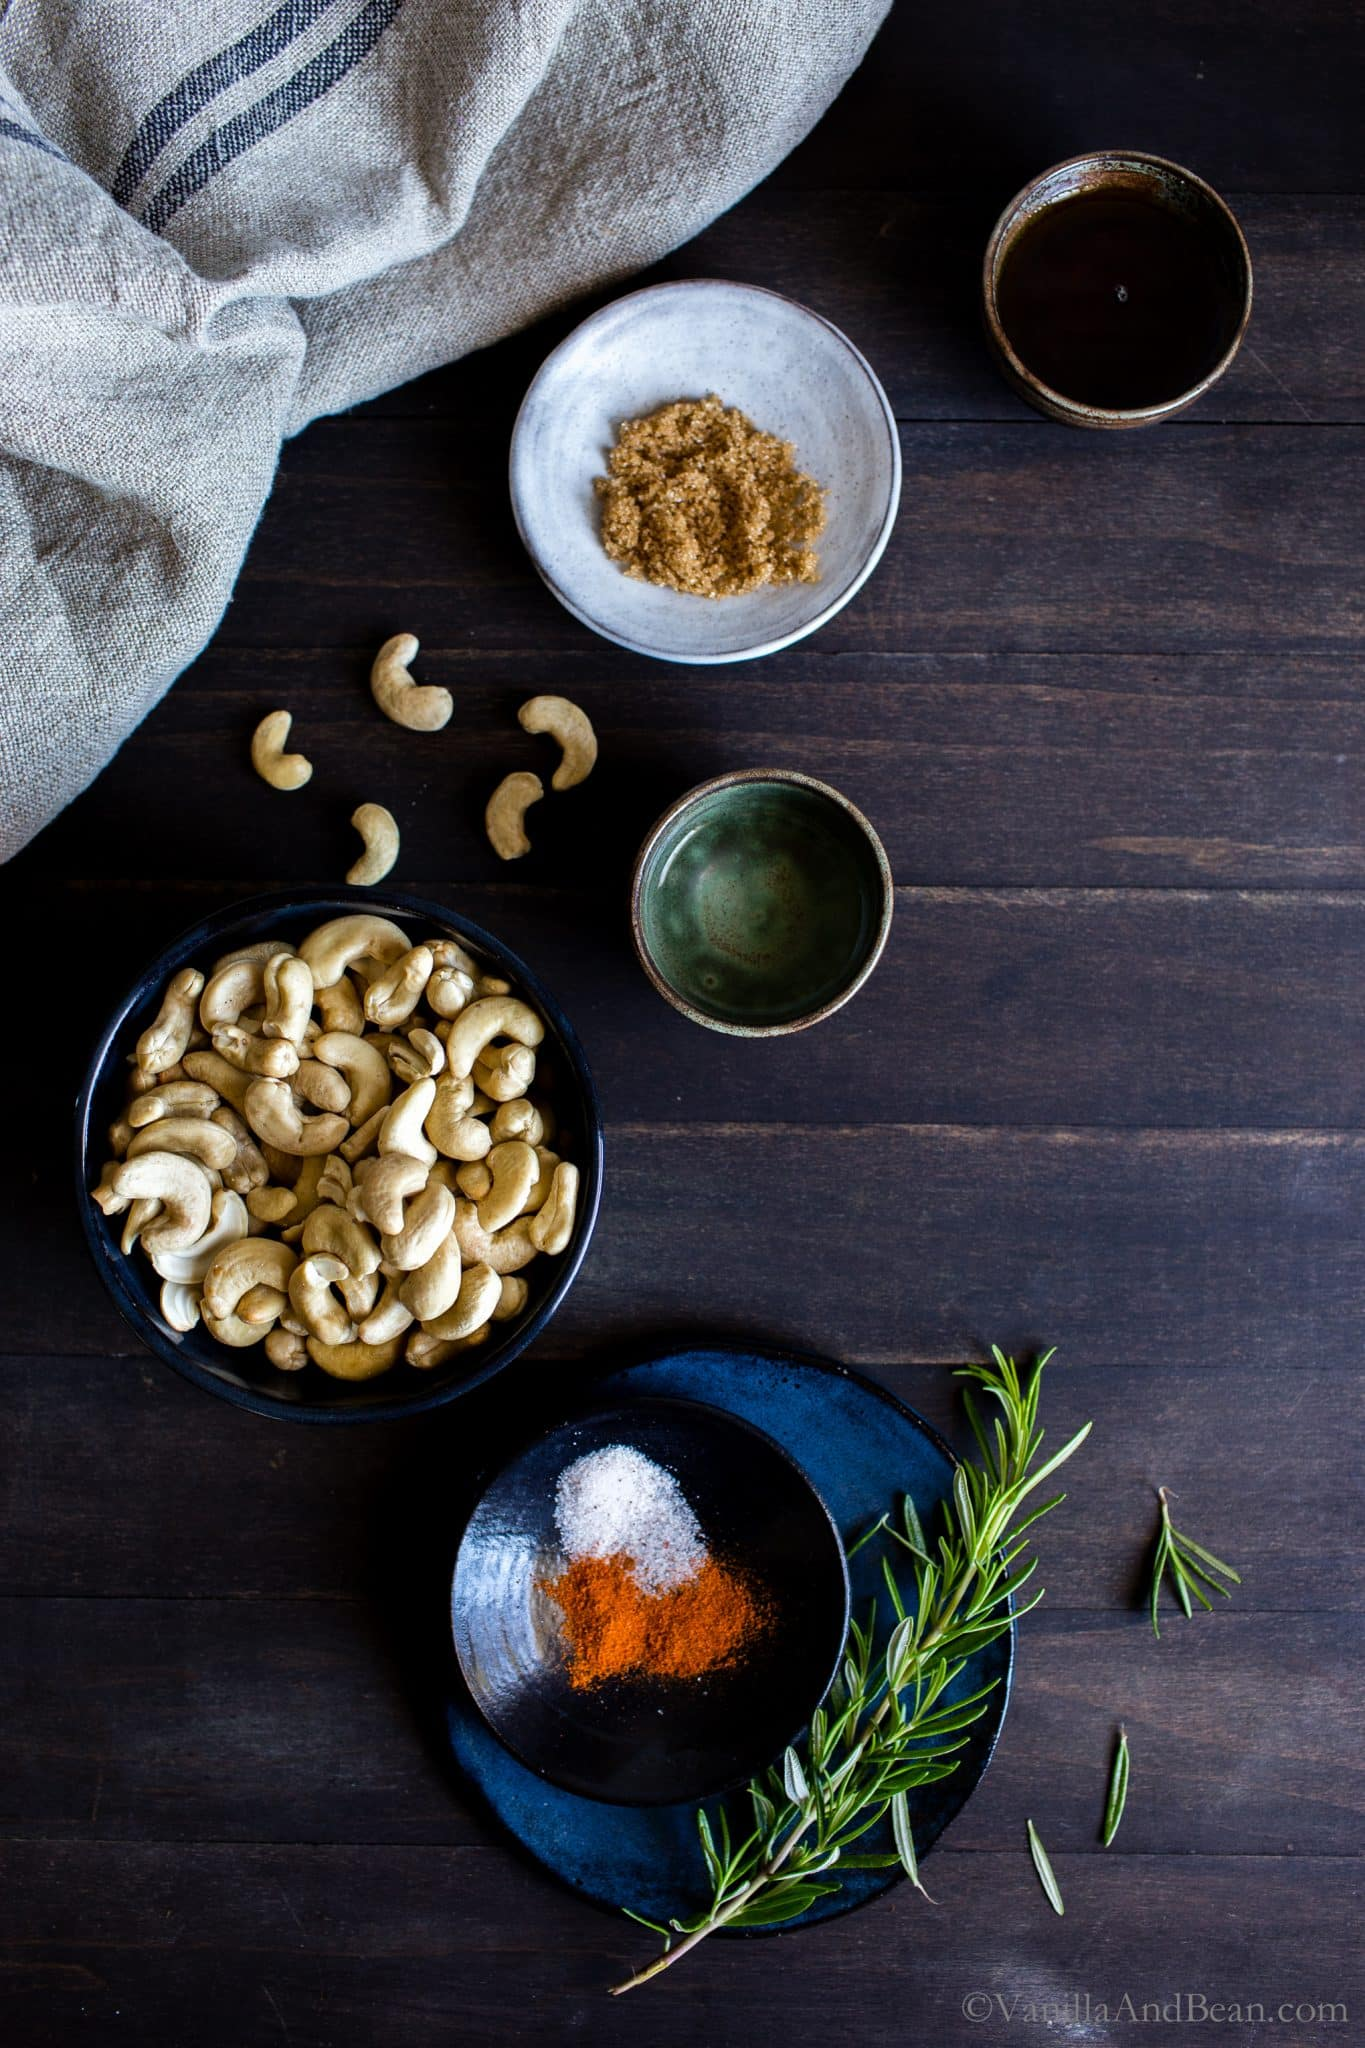 Sweet and Spicy Maple-Roasted Rosemary Cashews make a fabulous appetizer, snack or gift, anytime! #VeganFood #GlutenFreeFood #Recipe #HolidaySnacks #RoastedNuts